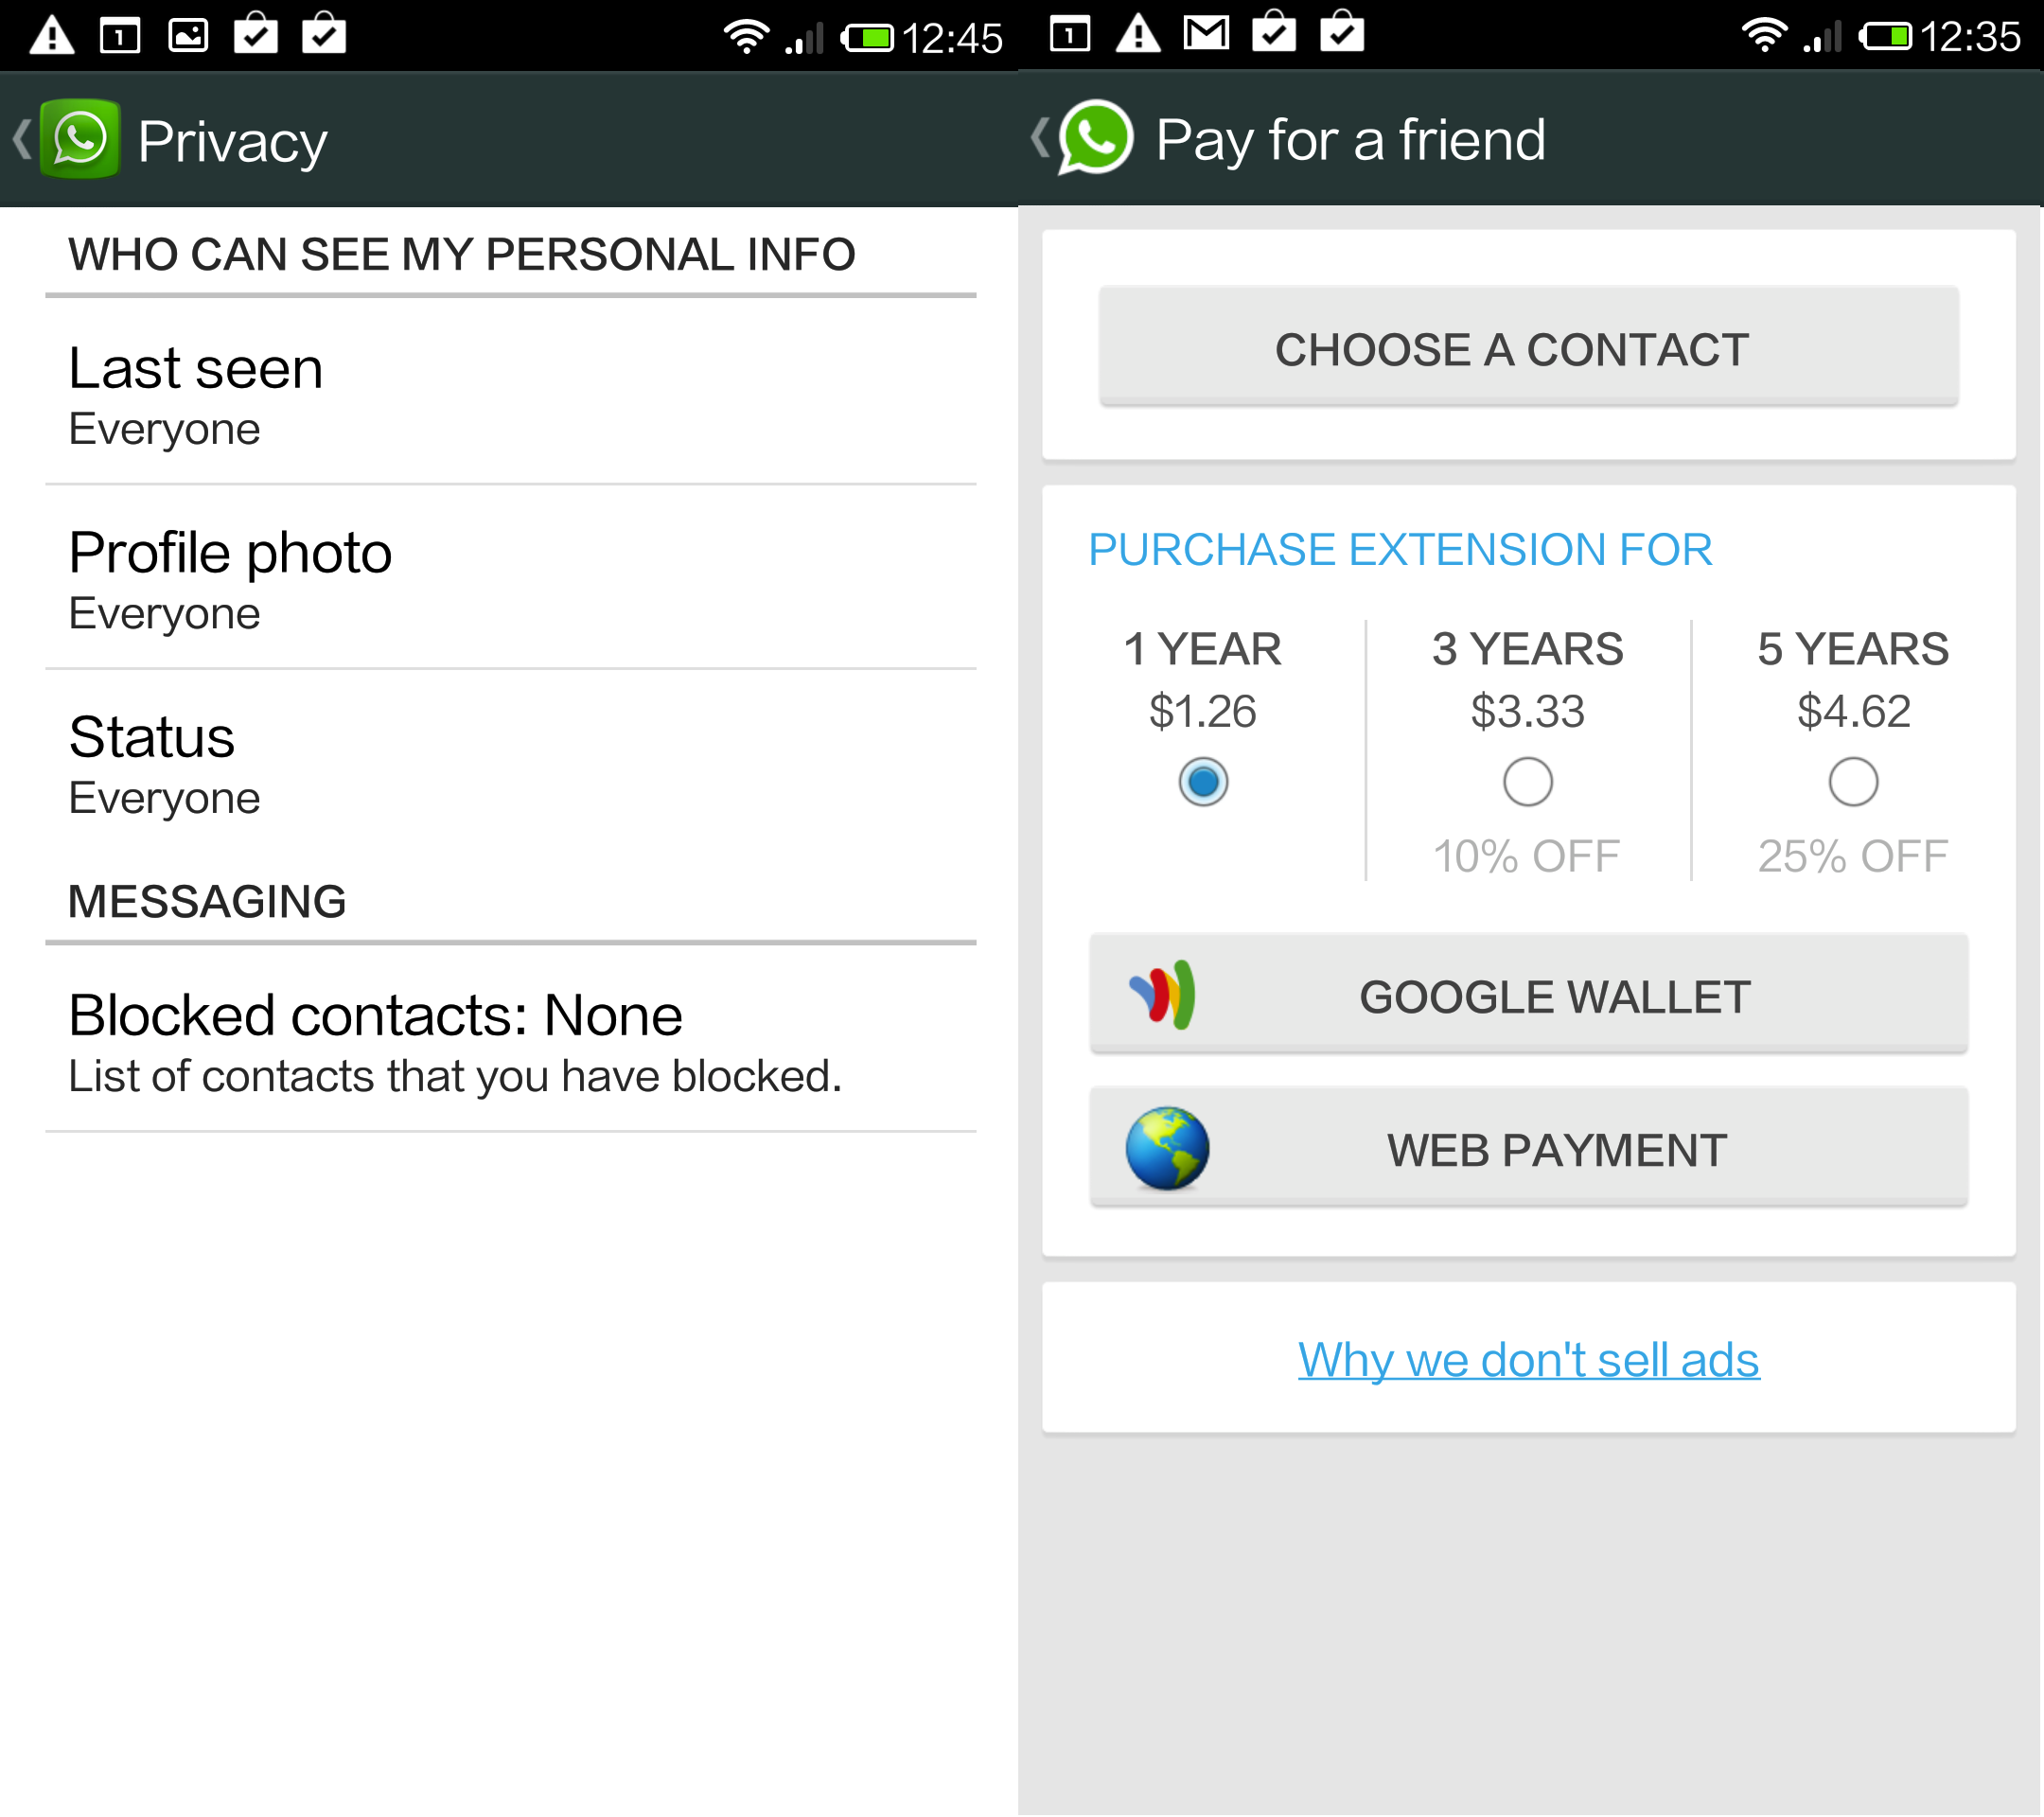 WhatsApp For Android Gets Privacy Updates, 'Pay For A Friend